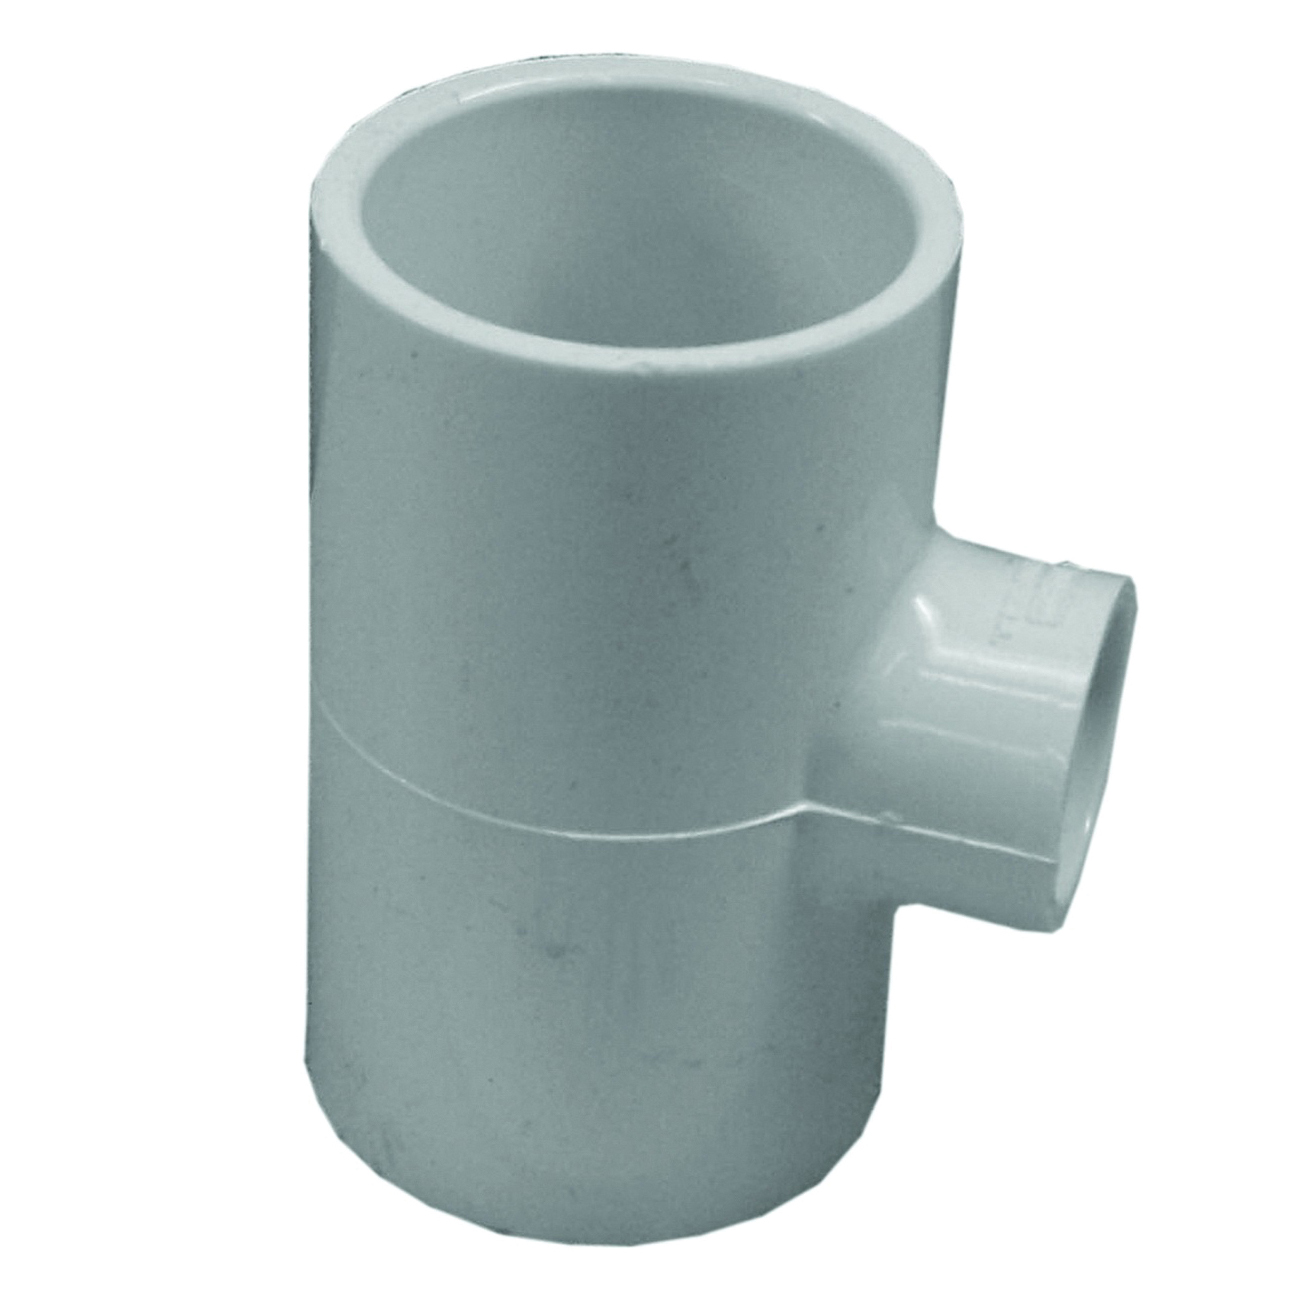 Picture of GENOVA 300 Series 31495 Pipe Reducing Tee, 1-1/2 in Run, Slip Run Connection, 1 in Branch, White